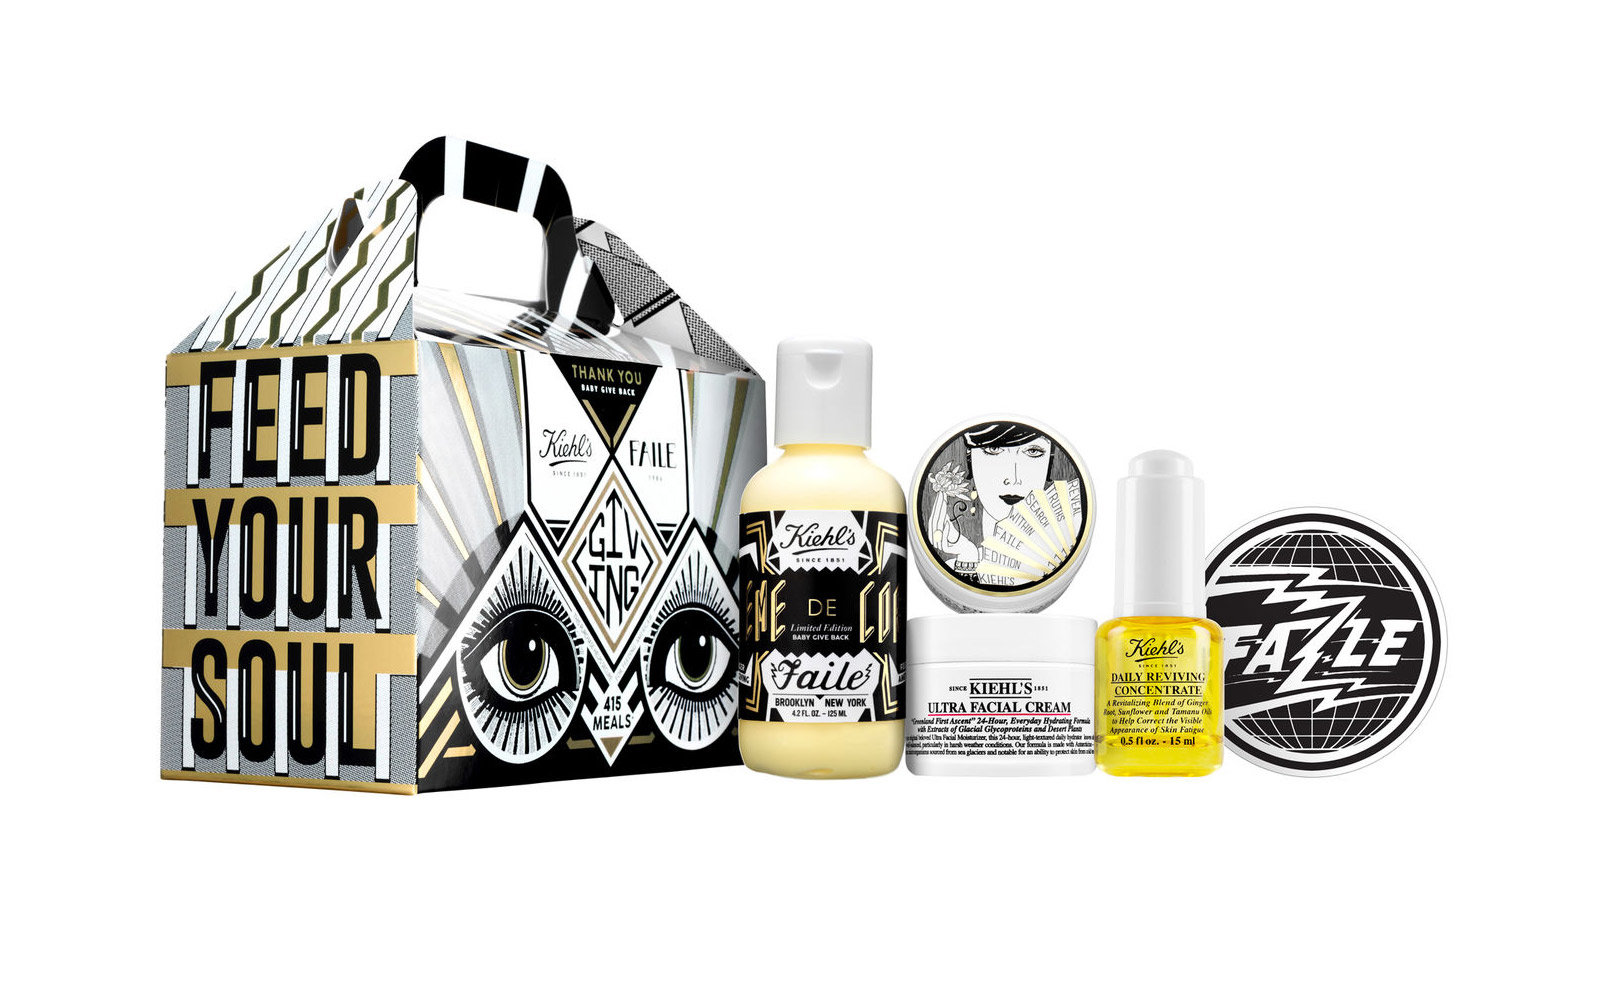 Kiehl's Since 1851 x Faile Collection For a Cause